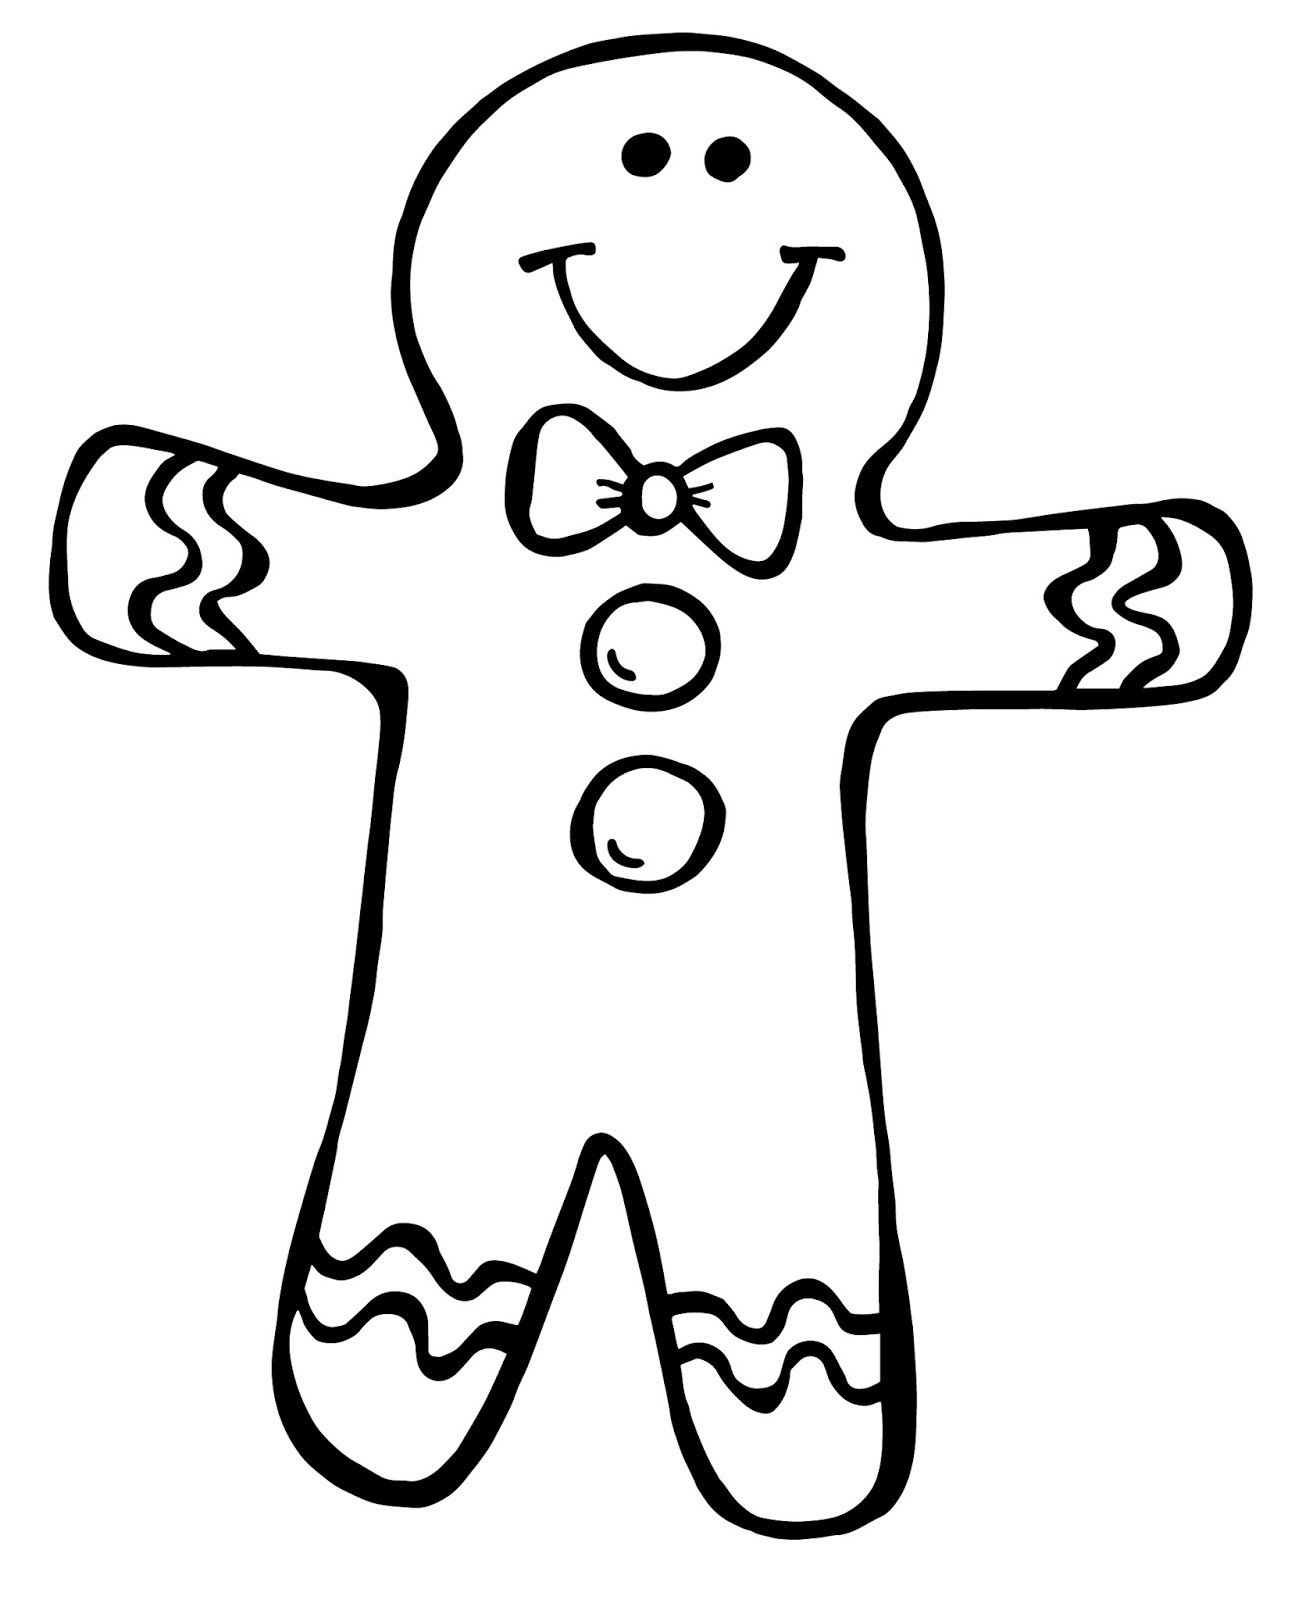 Gingerbread man black and white clipart kid